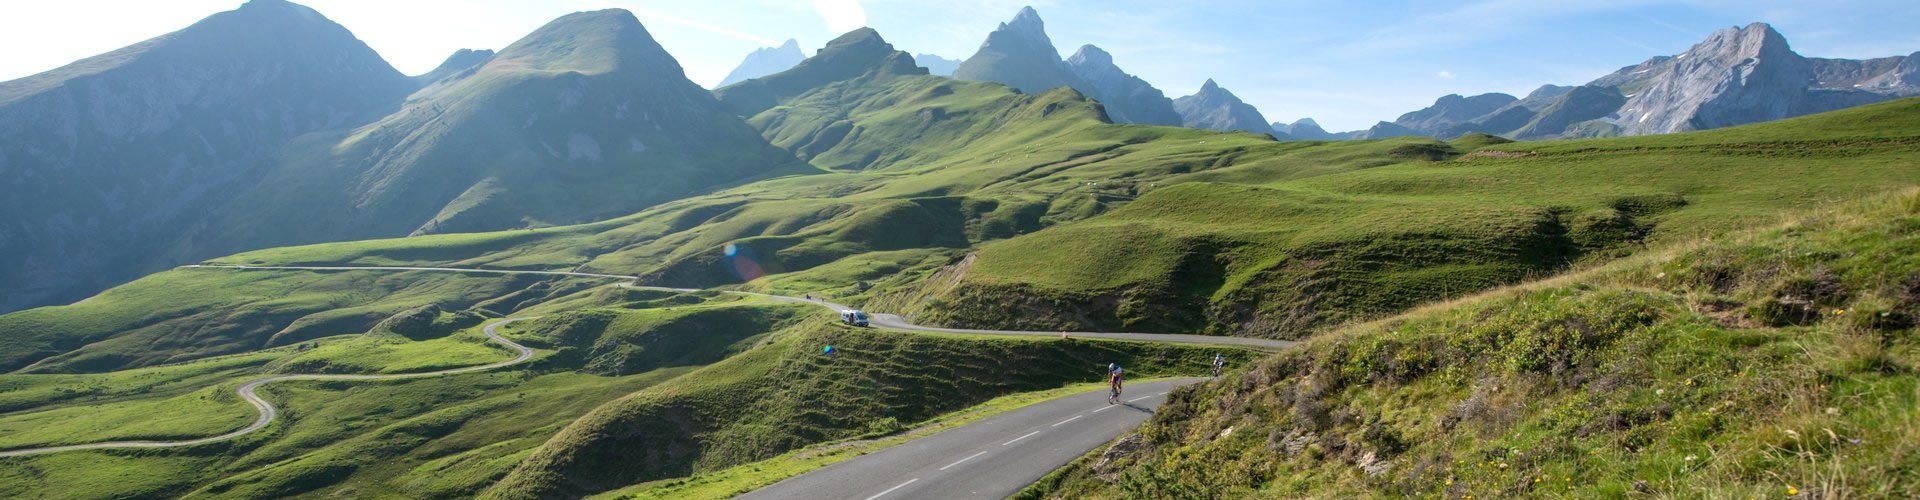 Cross Pyrenees Classic Cycle Climb Fully Supported bike ride